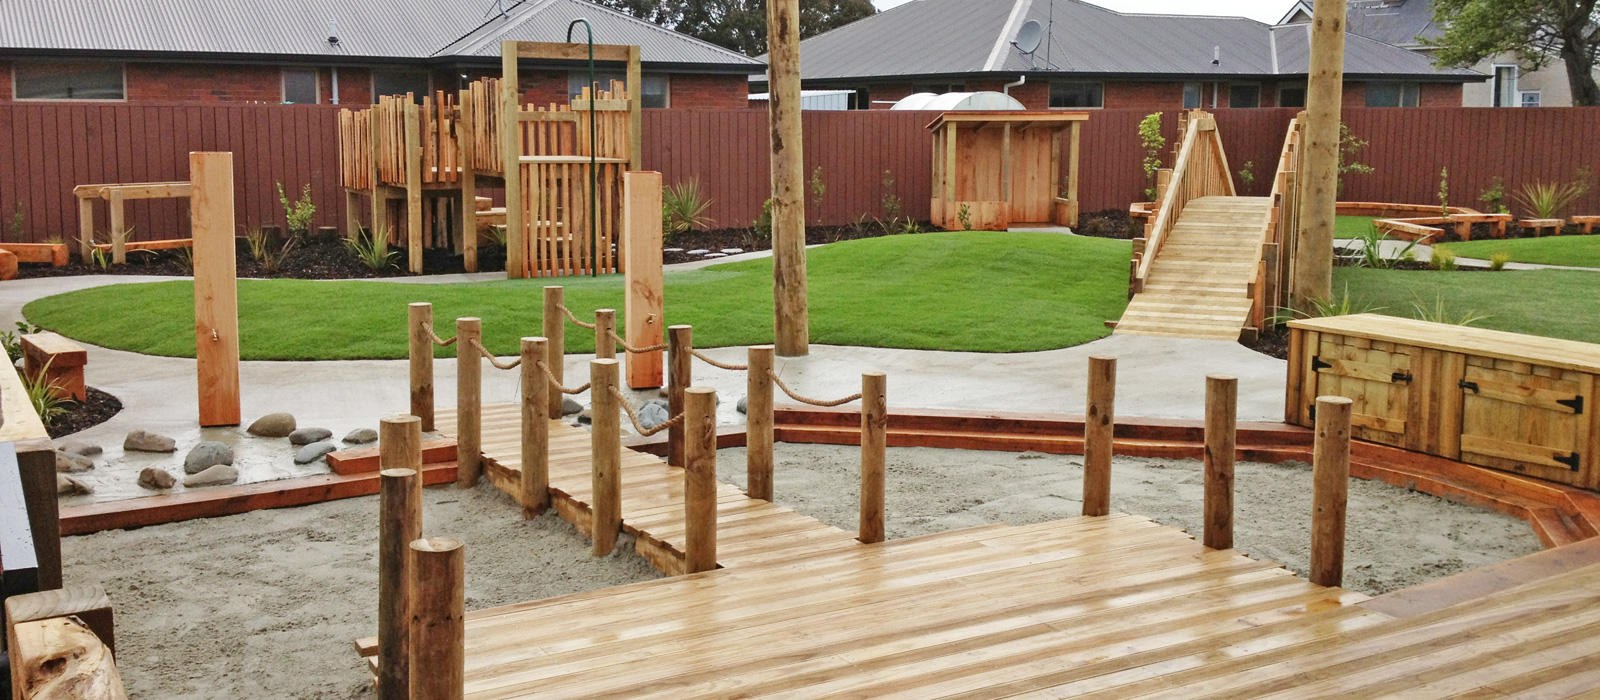 Playscape Cohesion // Playscape Design